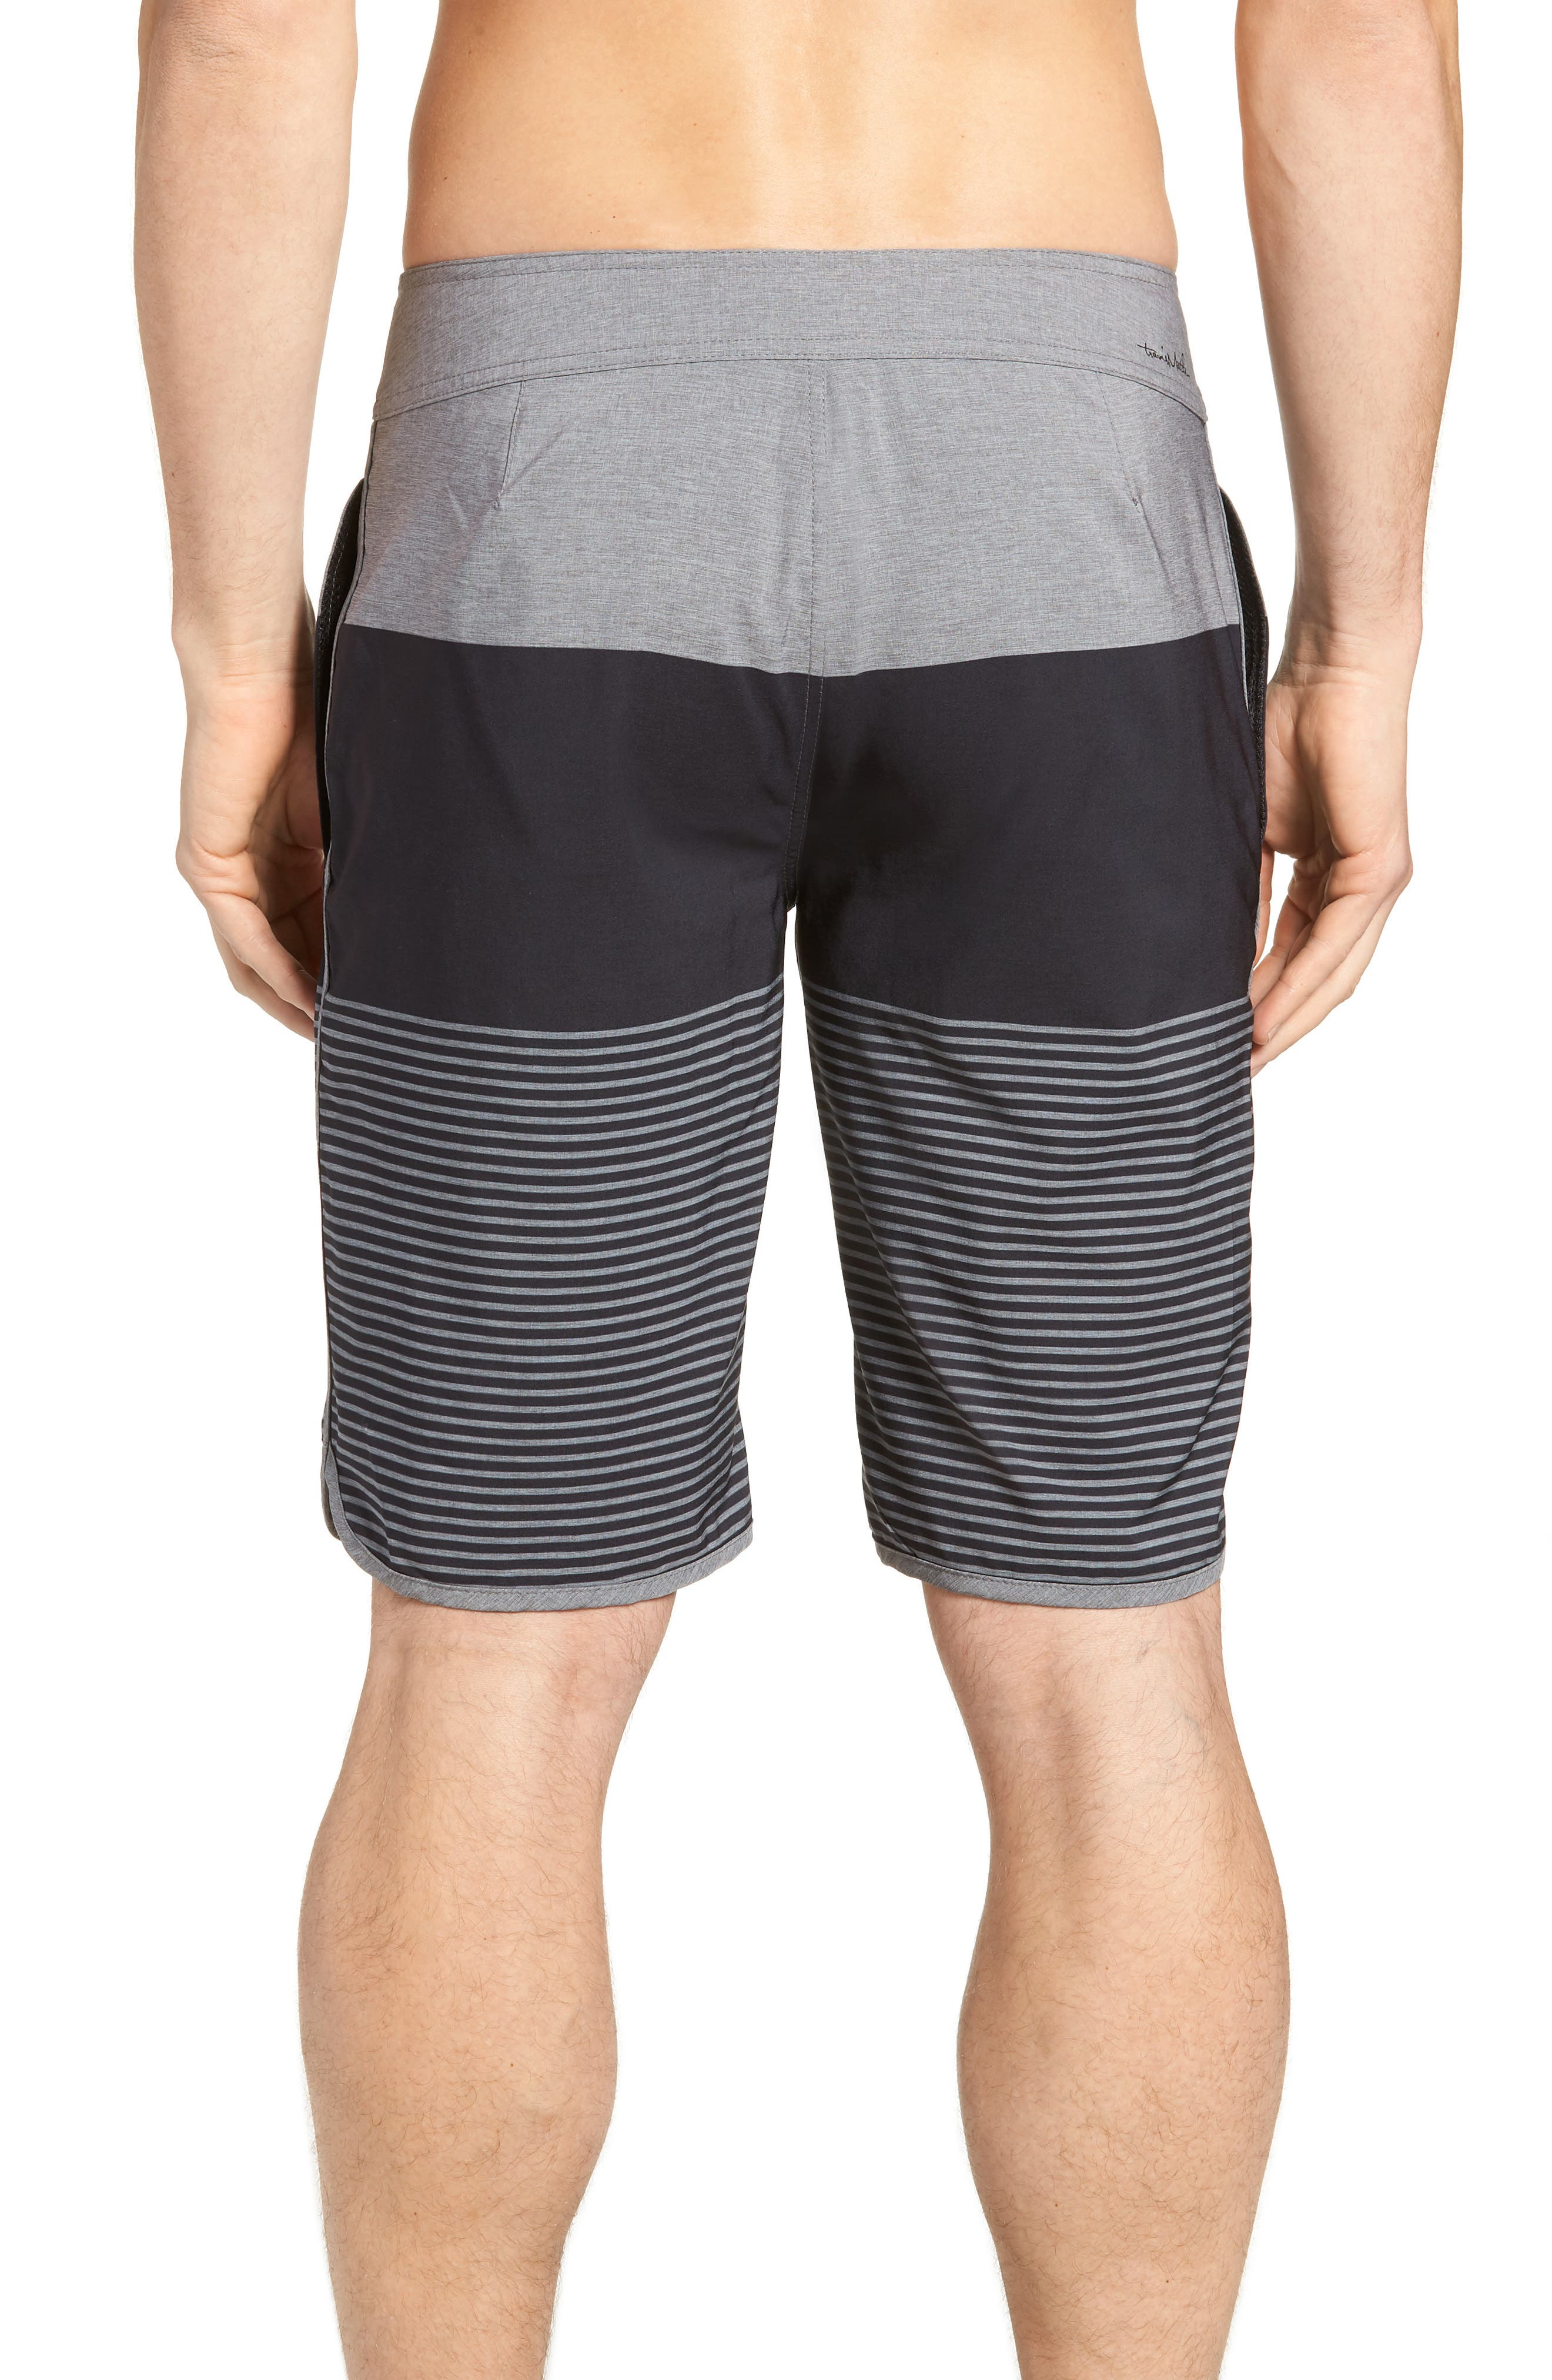 Claim It Regular Fit Board Shorts,                             Alternate thumbnail 2, color,                             001